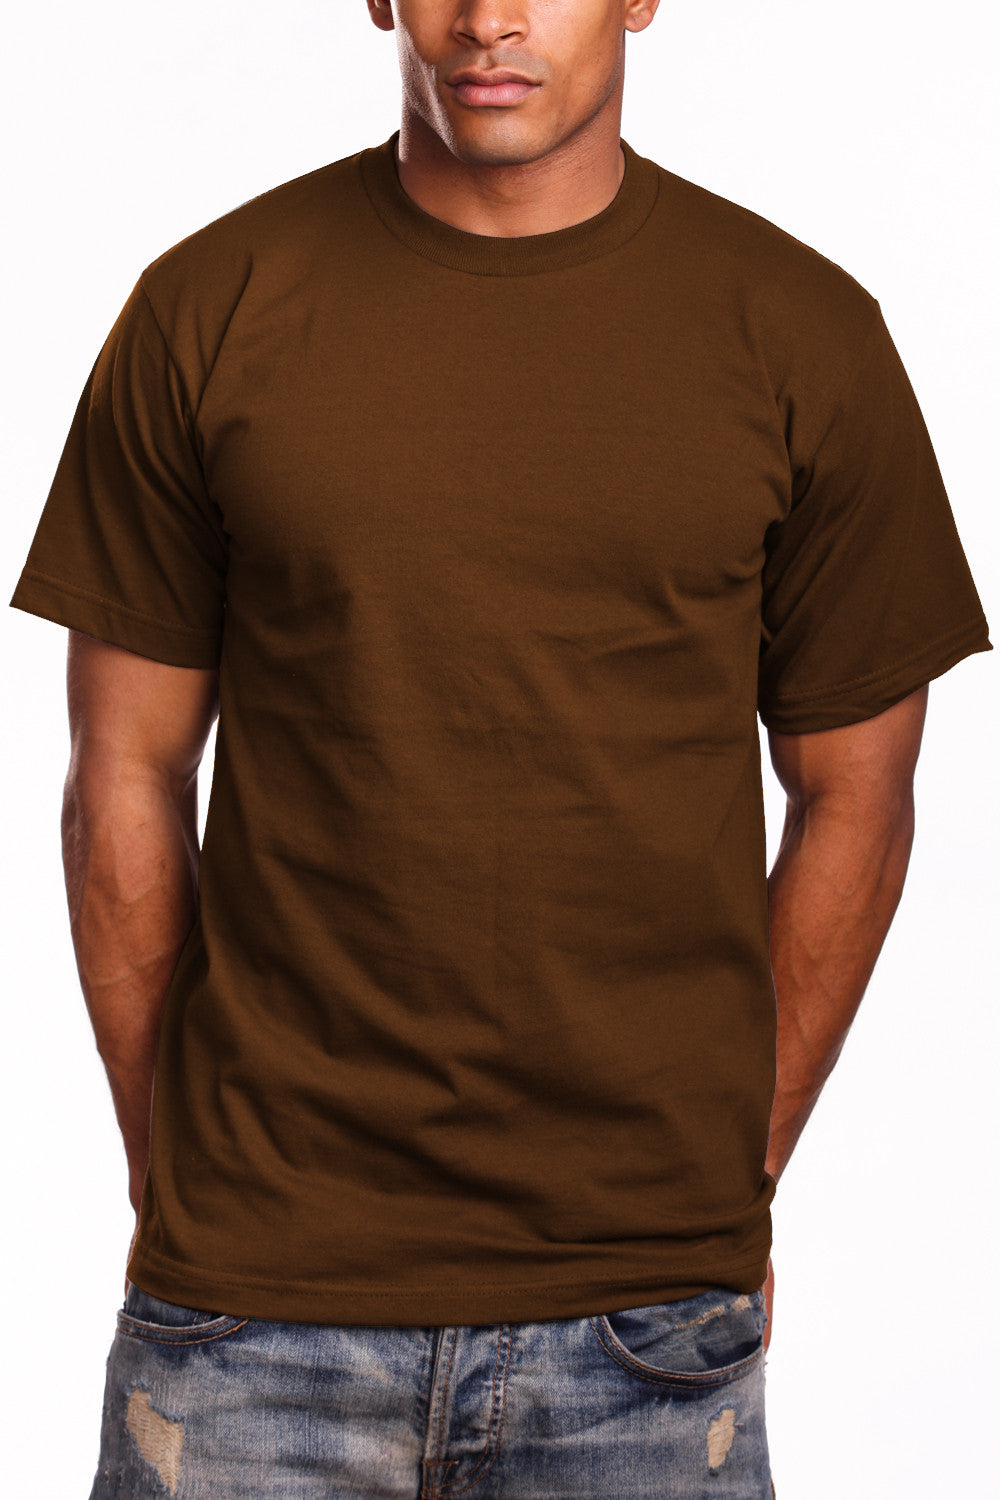 Athletic Fit Brown T-Shirts Activewear Tee Shirts